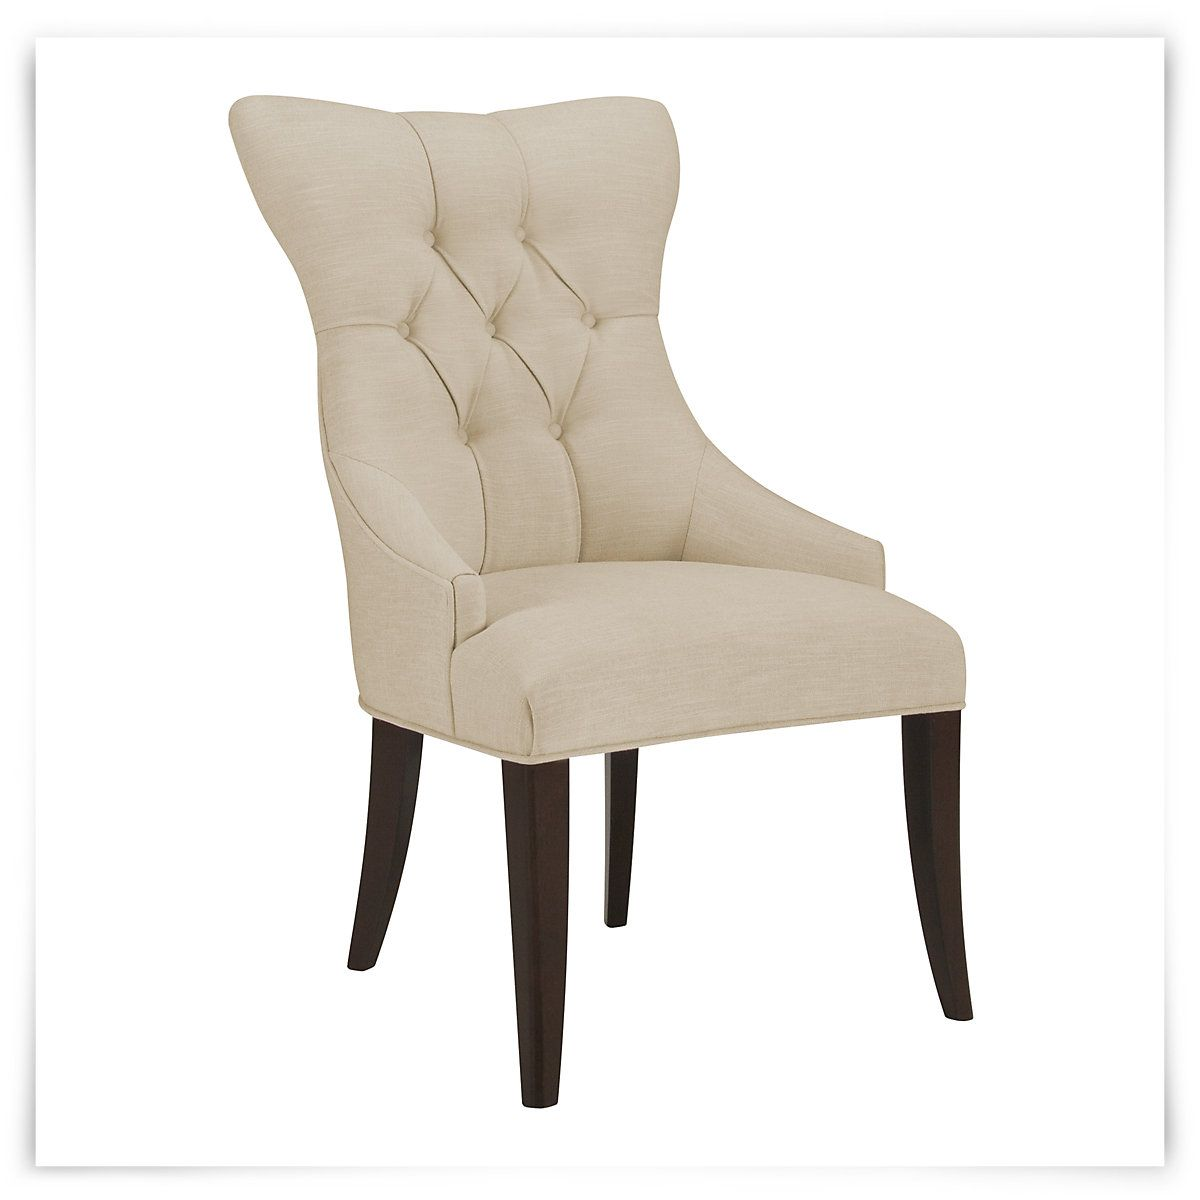 Esszimmer Stühle Art Deco True To Its Name The Deco Side Chair S Art Deco Influence Is